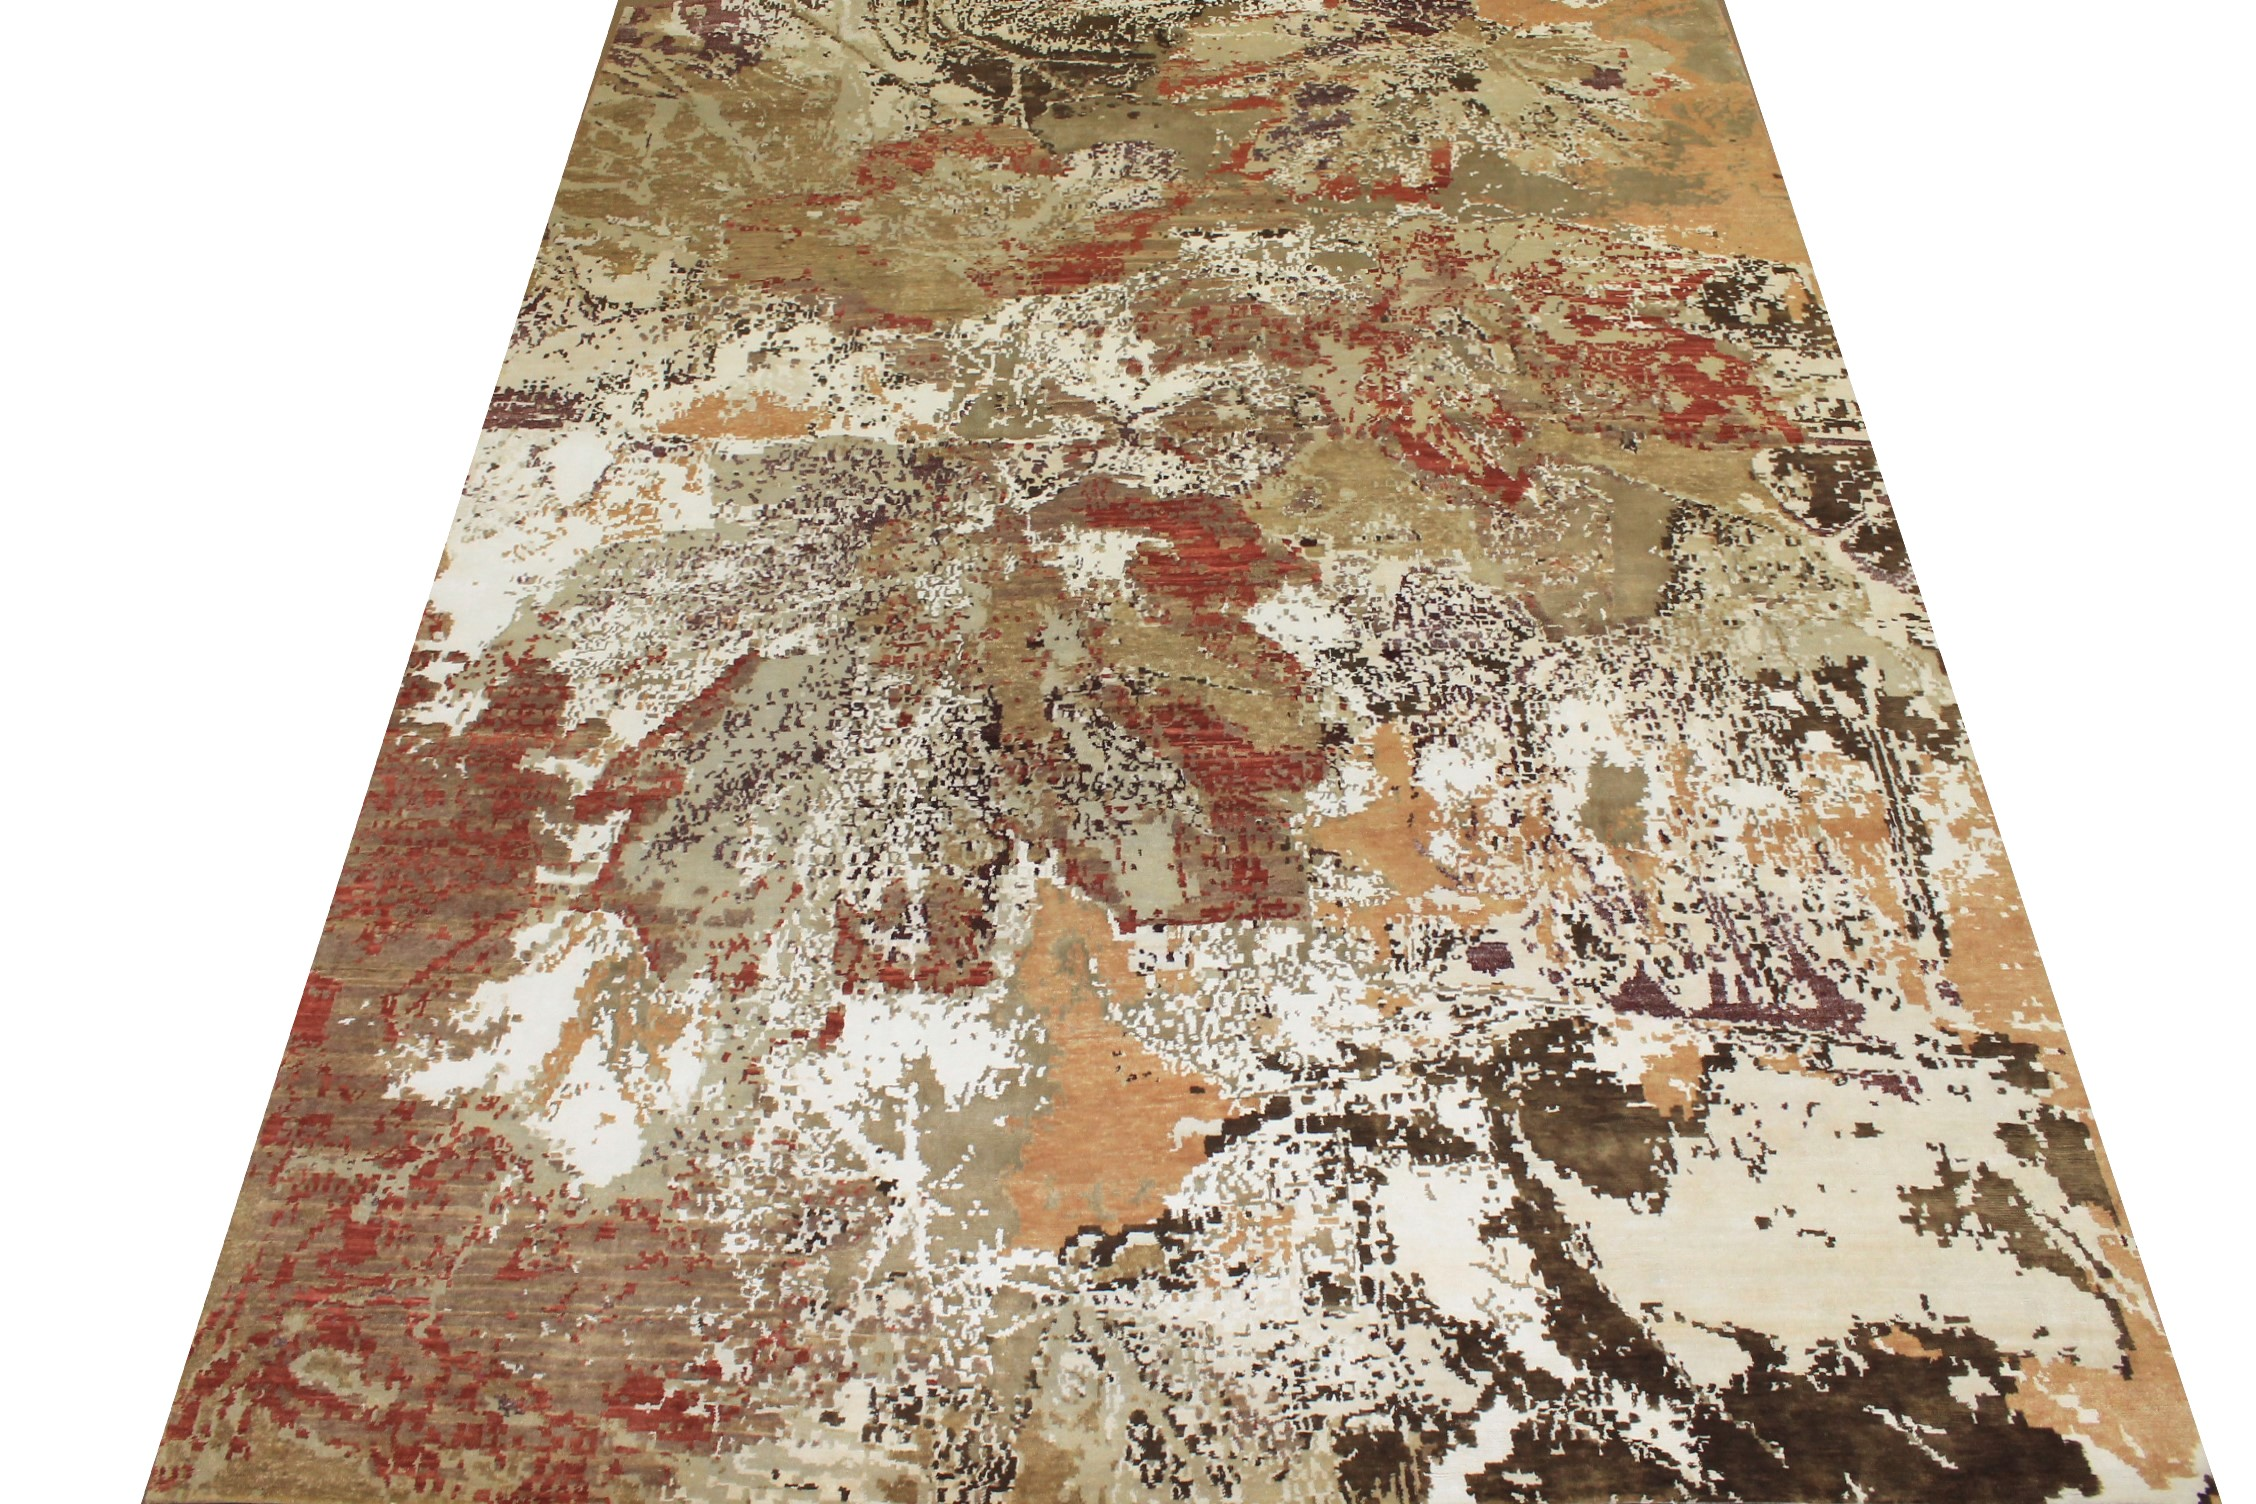 9x12 Modern Hand Knotted Wool & Bamboo Silk Area Rug - MR024888